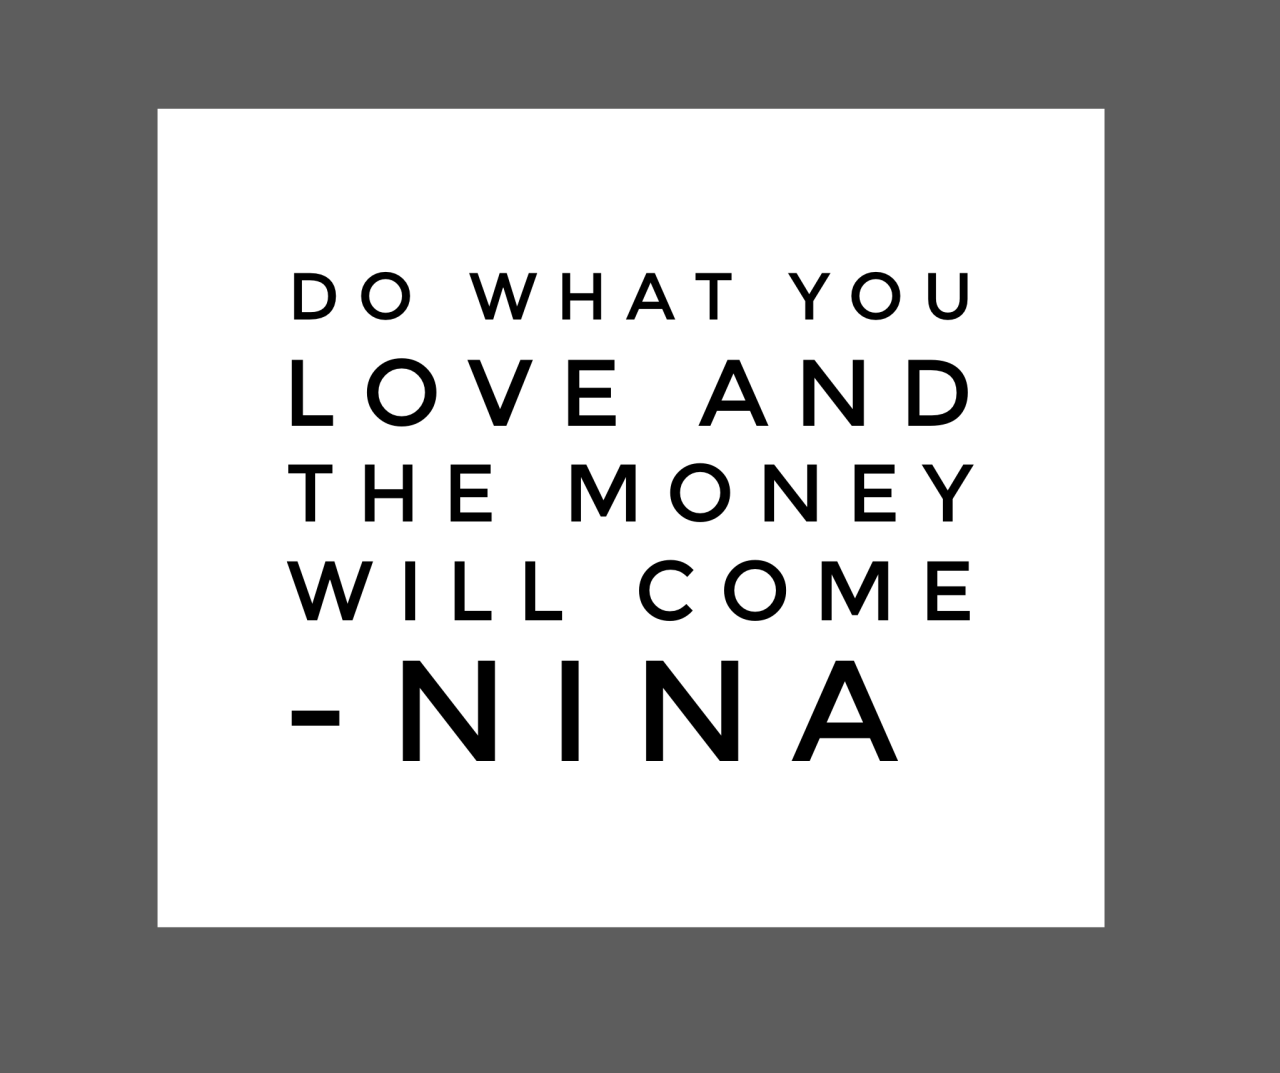 Do What You Love and the Money will Come